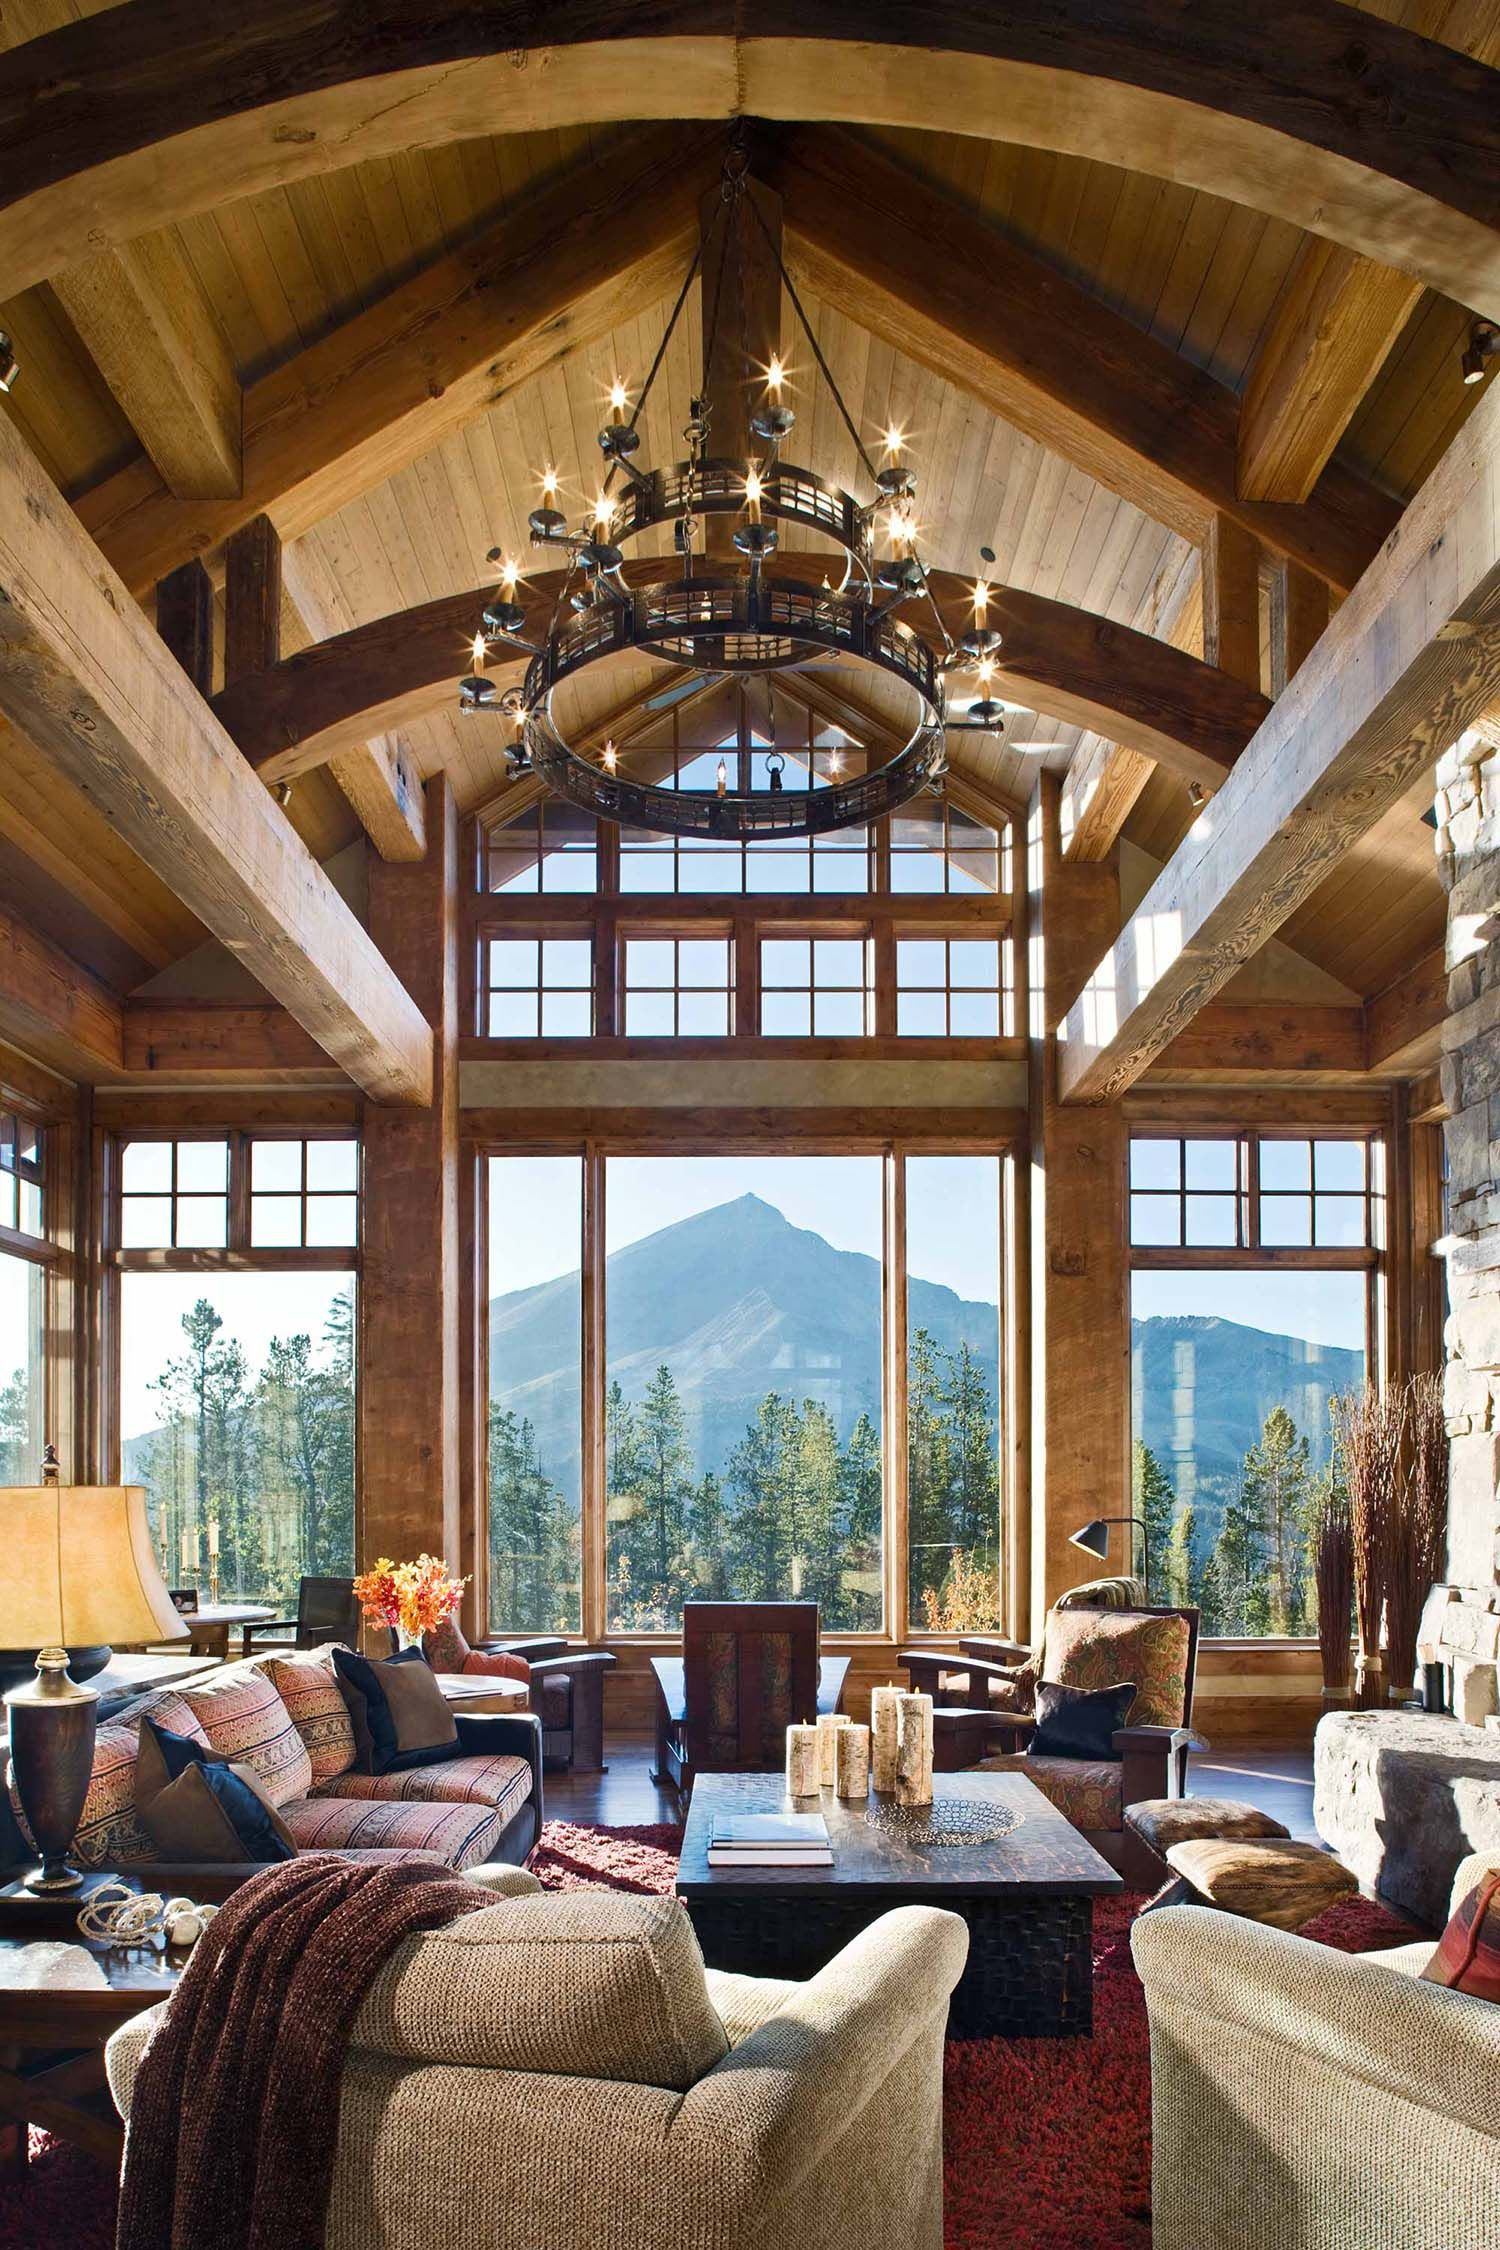 Beautiful rustic mountain retreat set amidst the grandeur of the